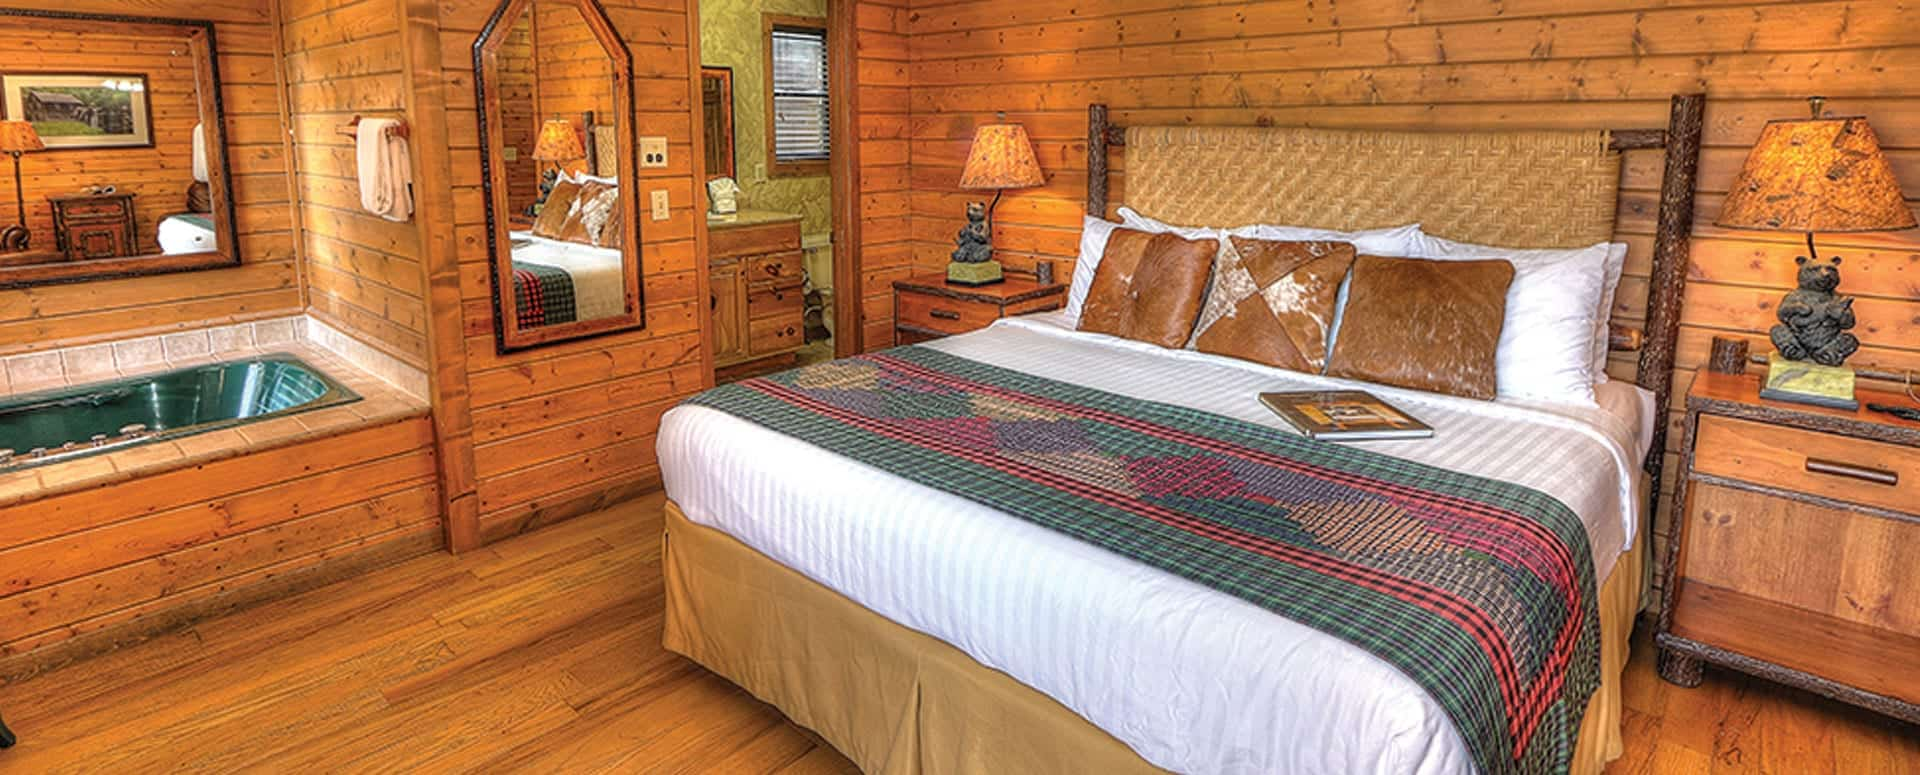 3 bedroom cabins in gatlinburg tn gatlinburg cabin rentals for 1 bedroom pet friendly cabins in gatlinburg tn